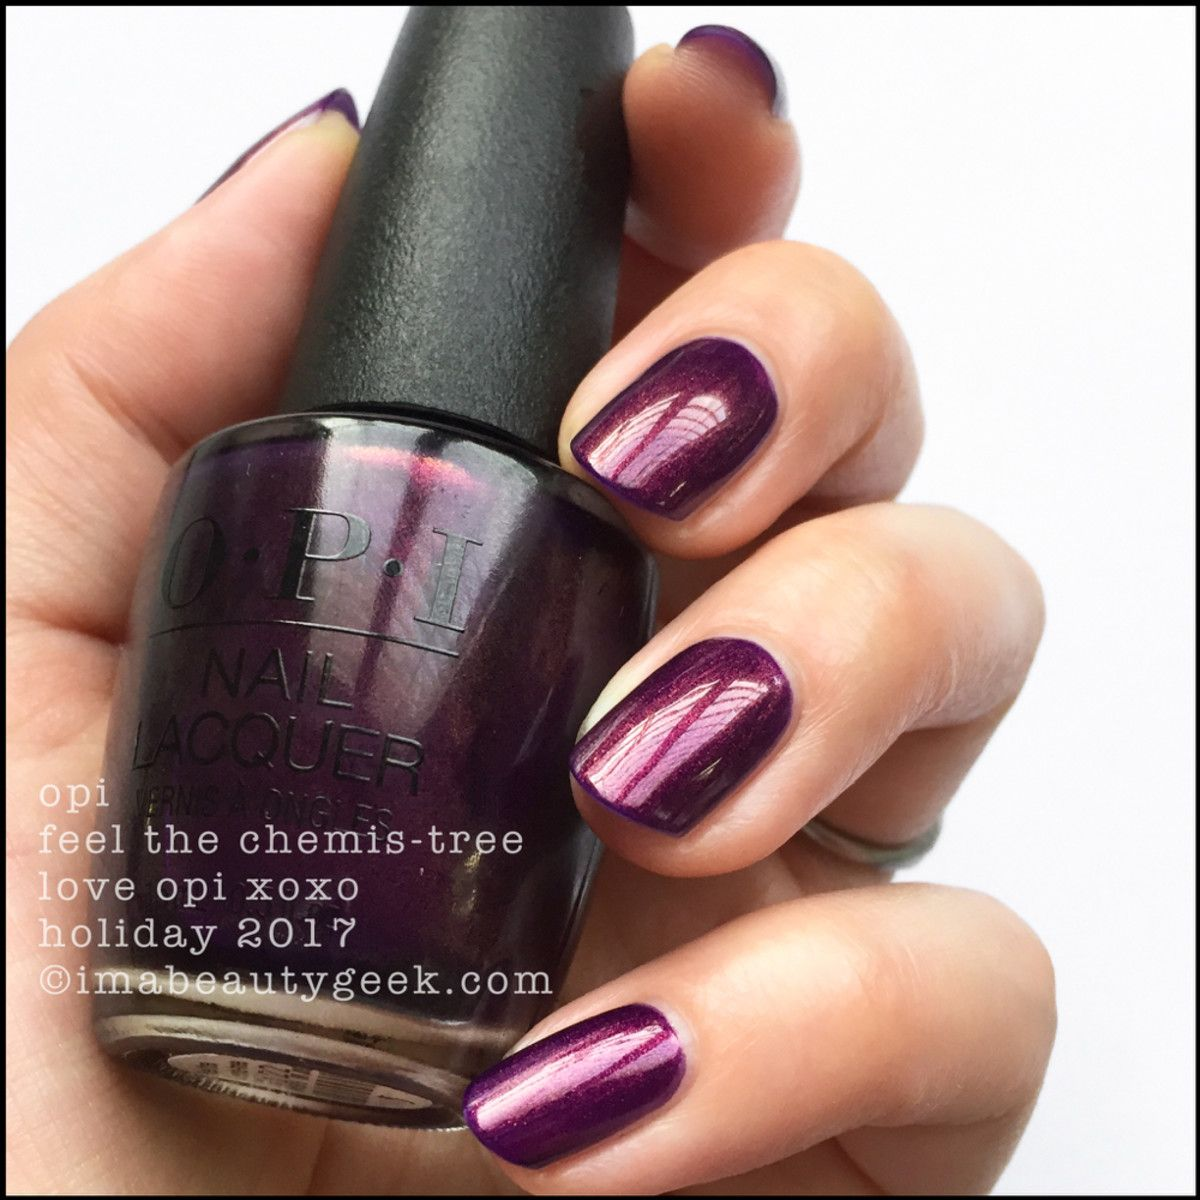 LOVE OPI XOXO HOLIDAY 2017 SWATCHES & REVIEW